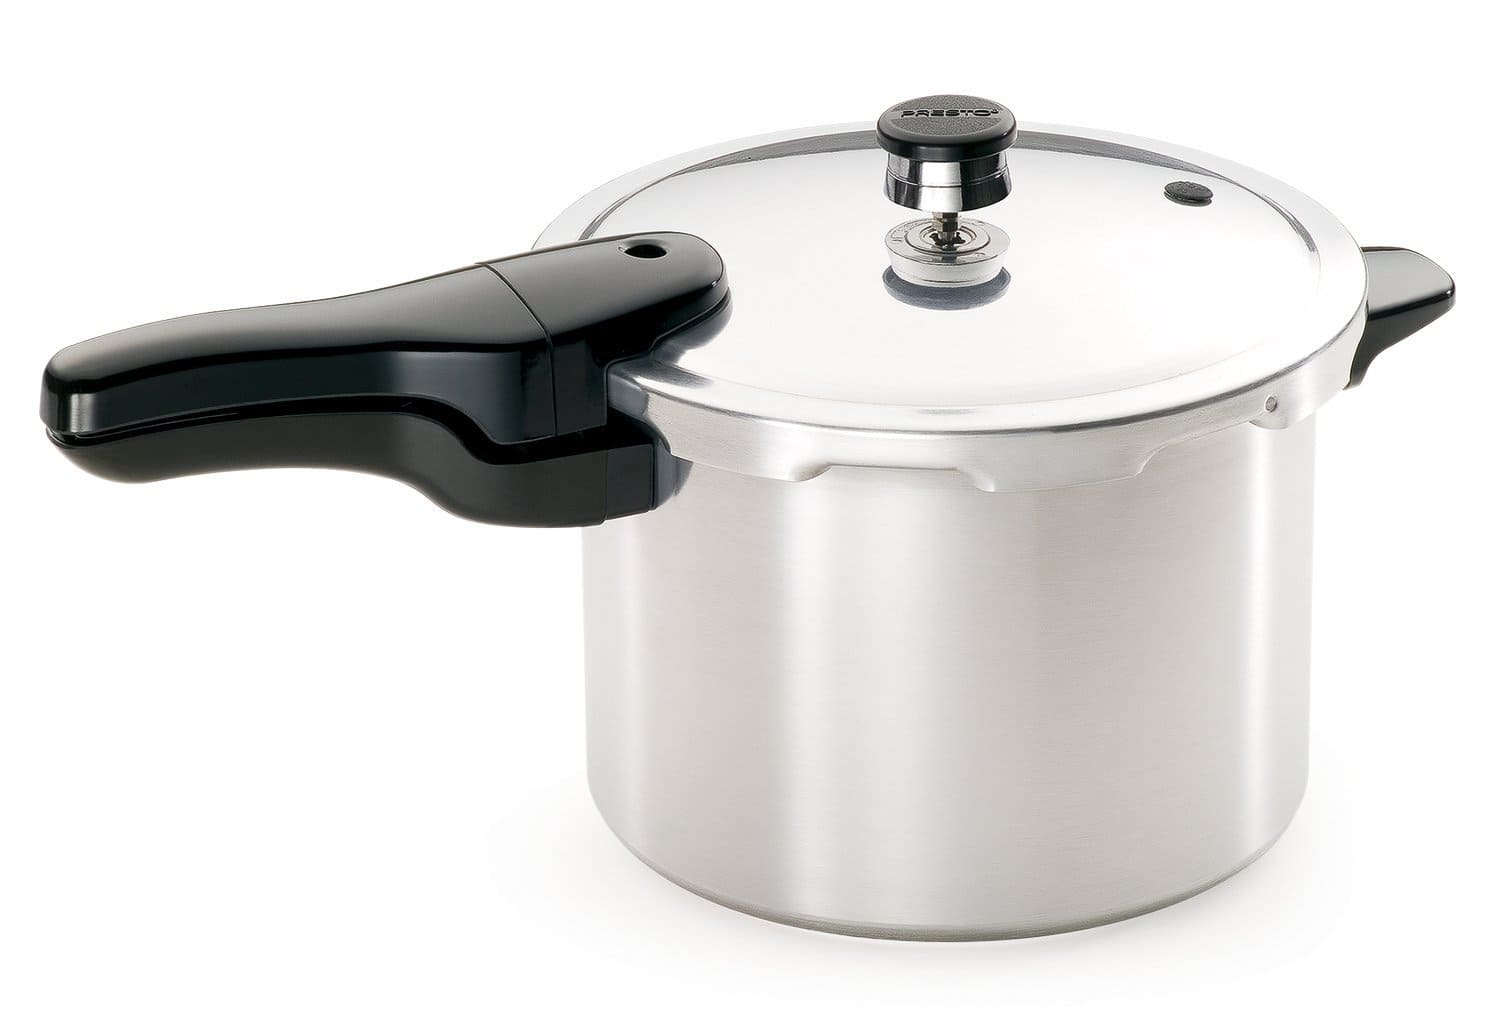 Presto 01264 6-Quart Aluminum Pressure Cooker 6 Quart $20.00, 8 Quart for $24.60 + F'S (Prime) (Amazon)